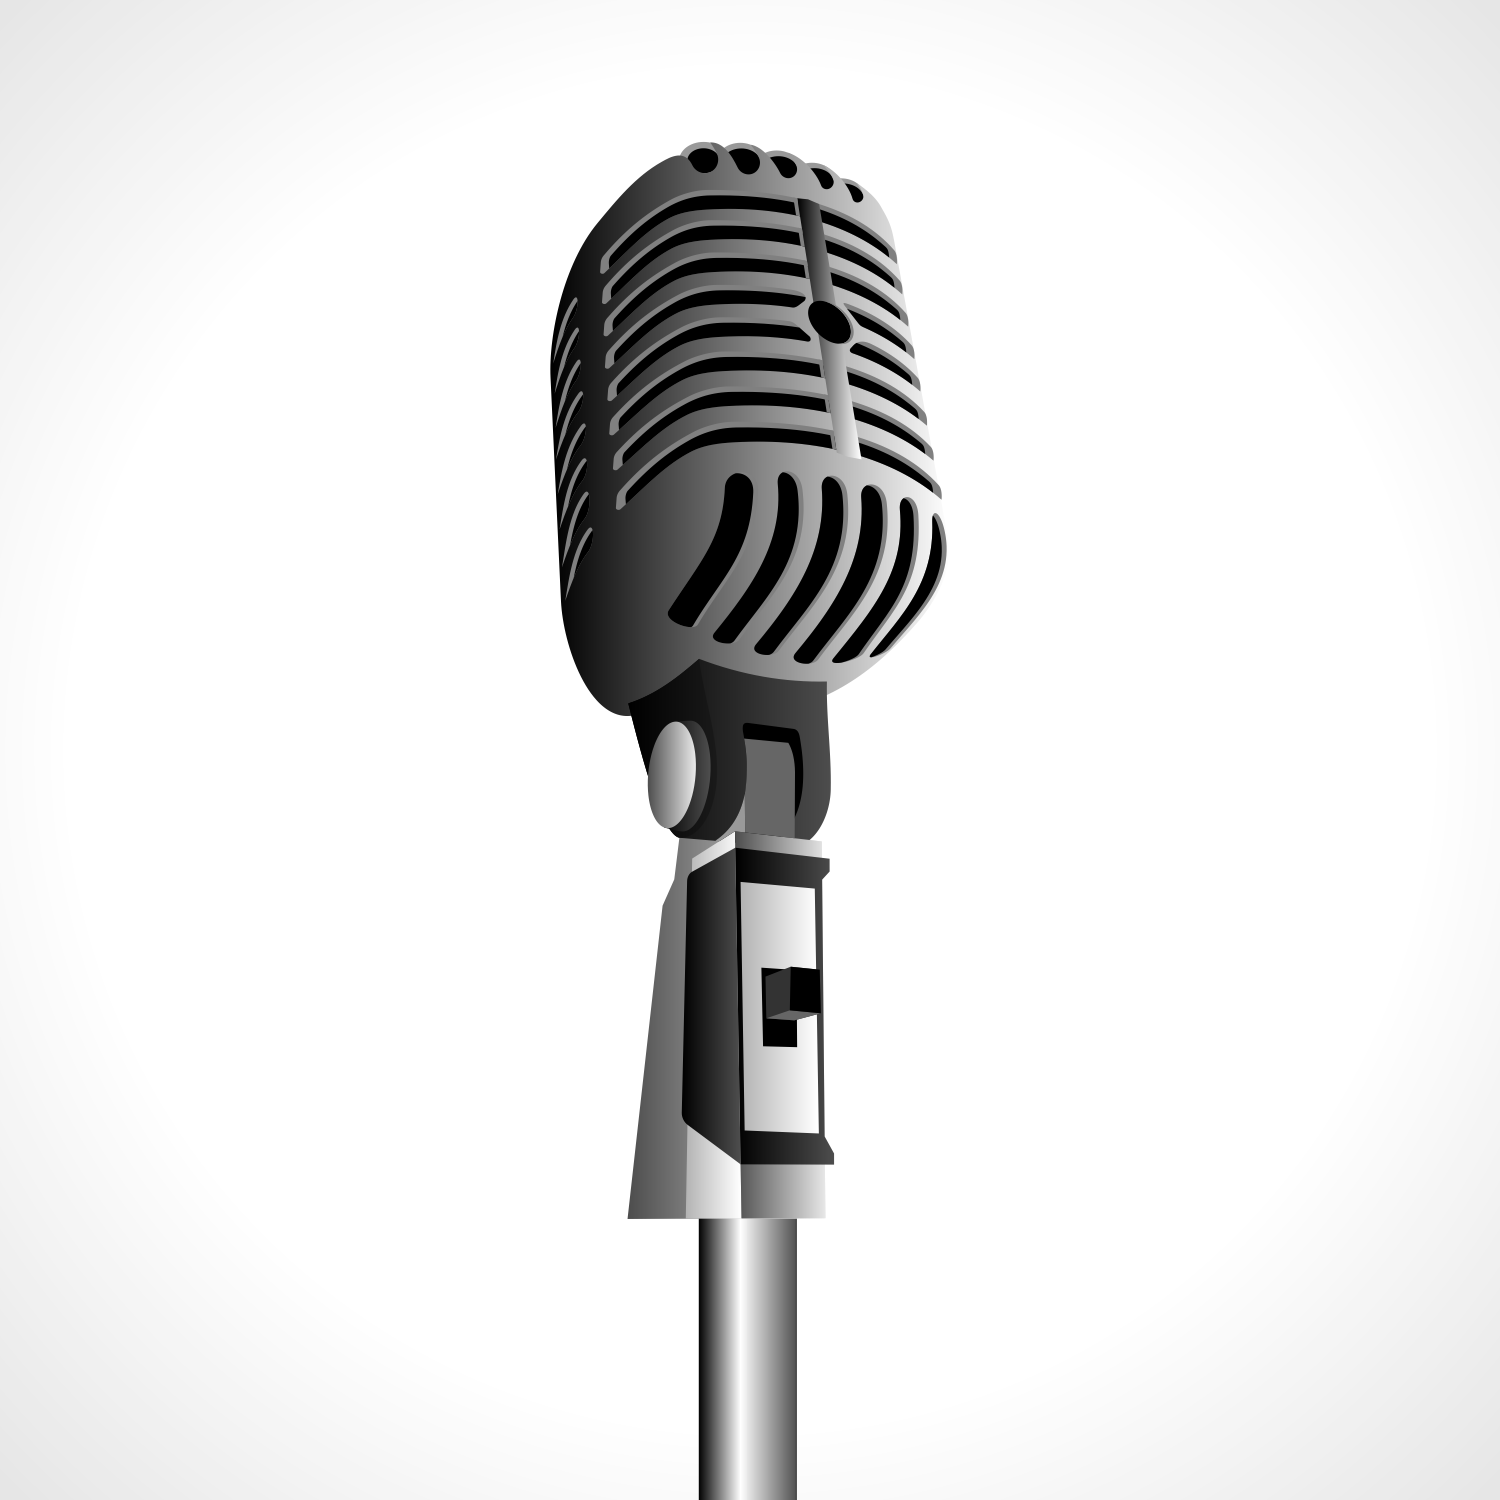 Vintage microphone. Free vector illustration